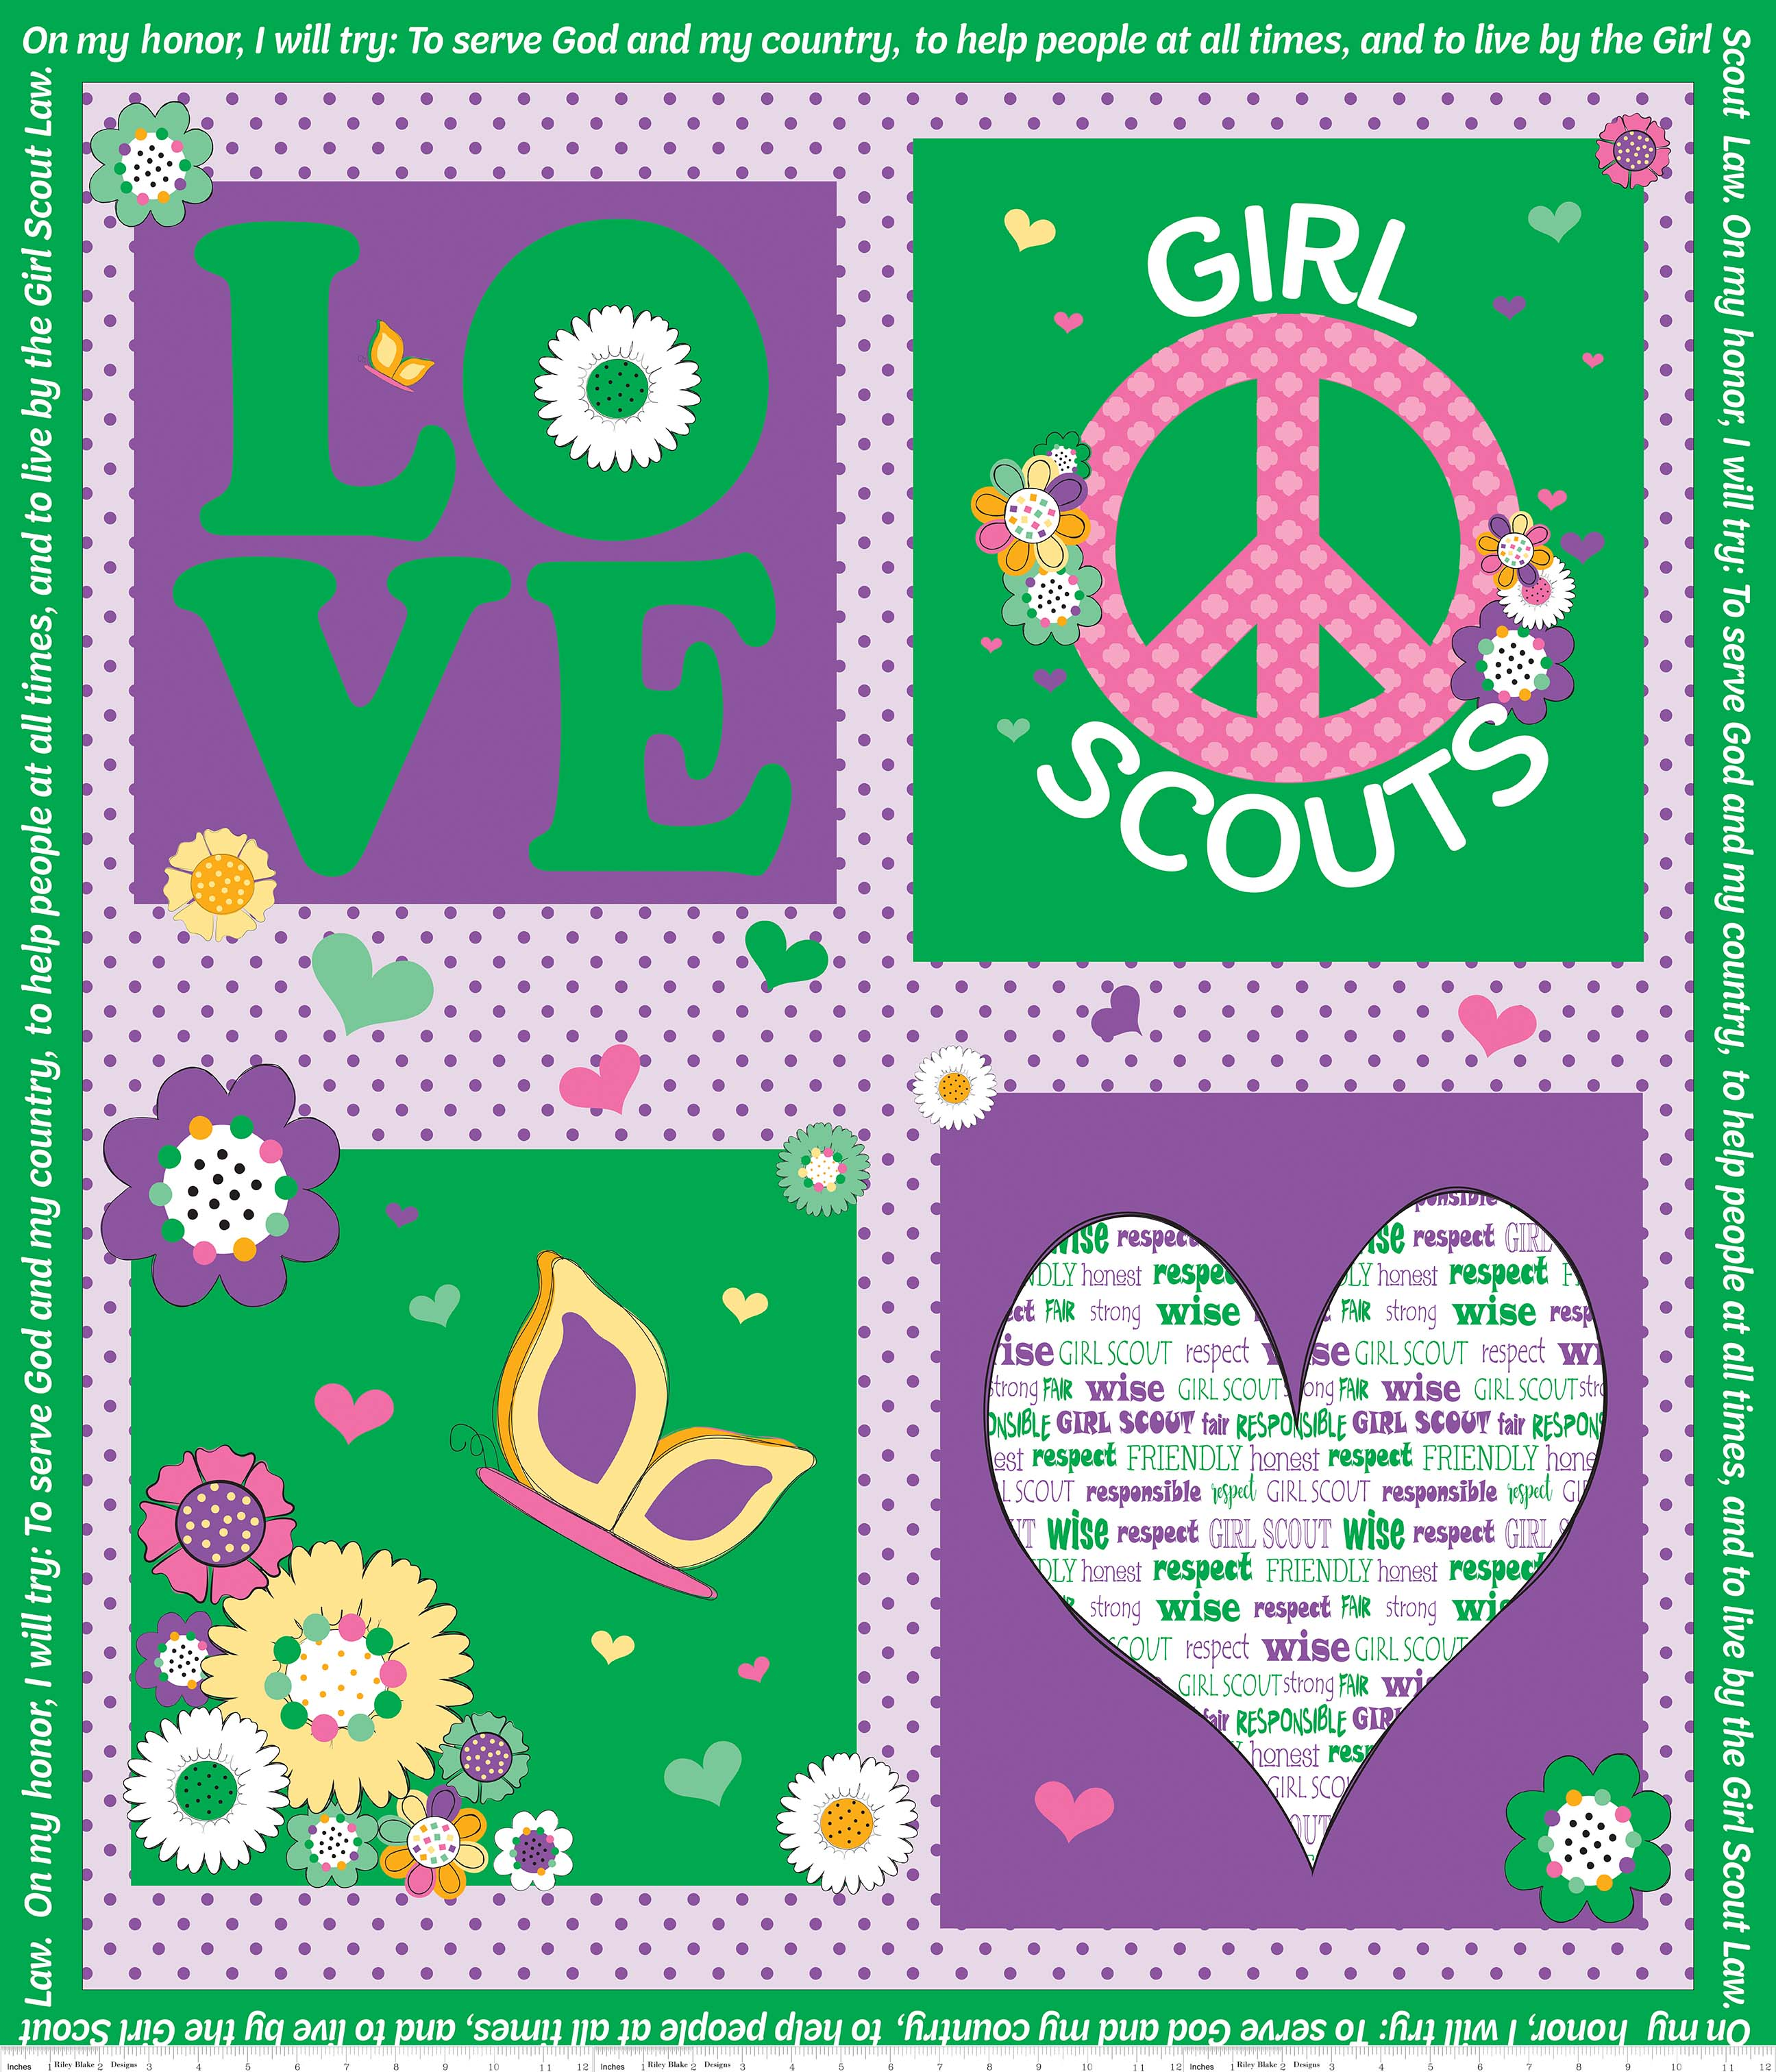 Green Girl Scout? Panel